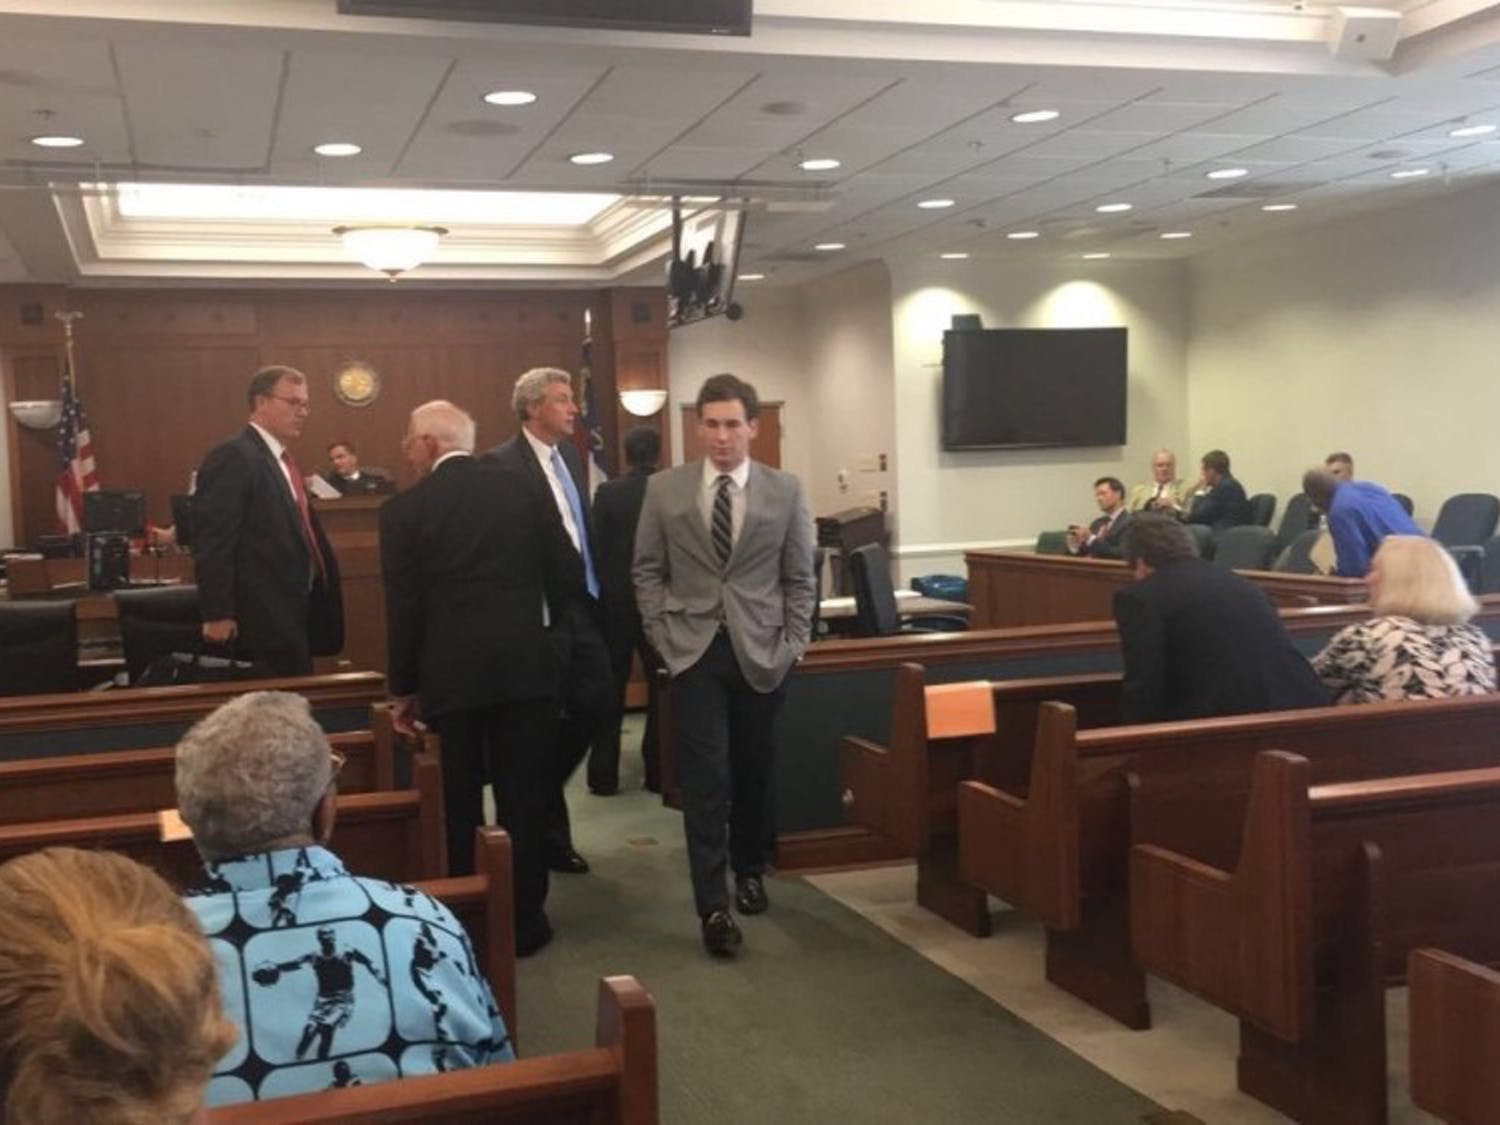 Chandler Kania leaves his pre-trial hearing at the Orange County Courthouse on Aug. 16. Photo by Sara Kiley Watson.